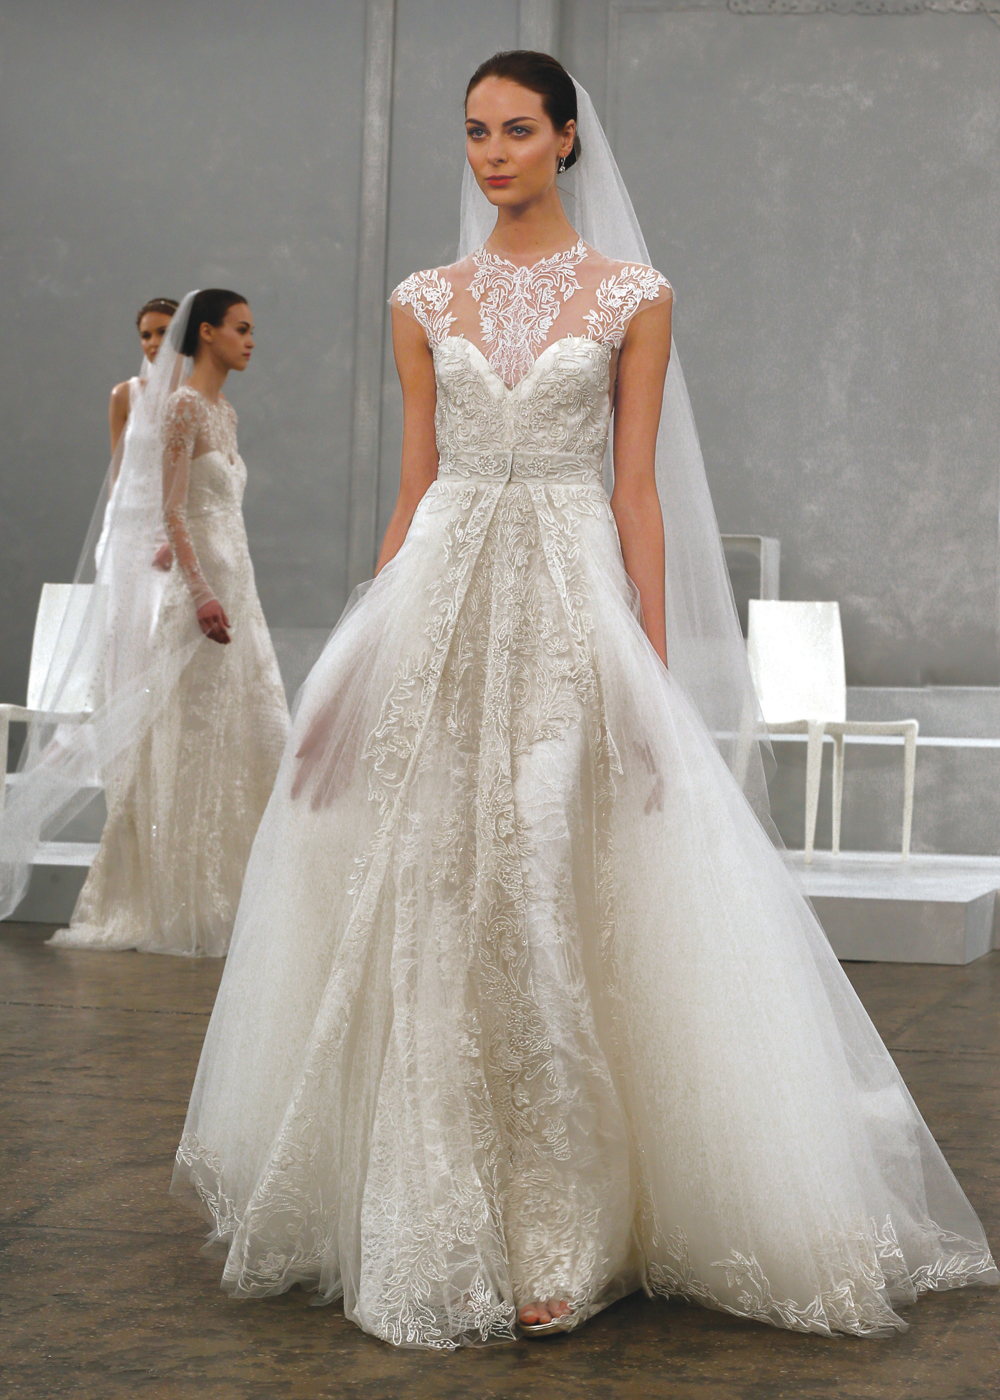 Monique Lhuillier Glamorous A-Line Wedding Gown